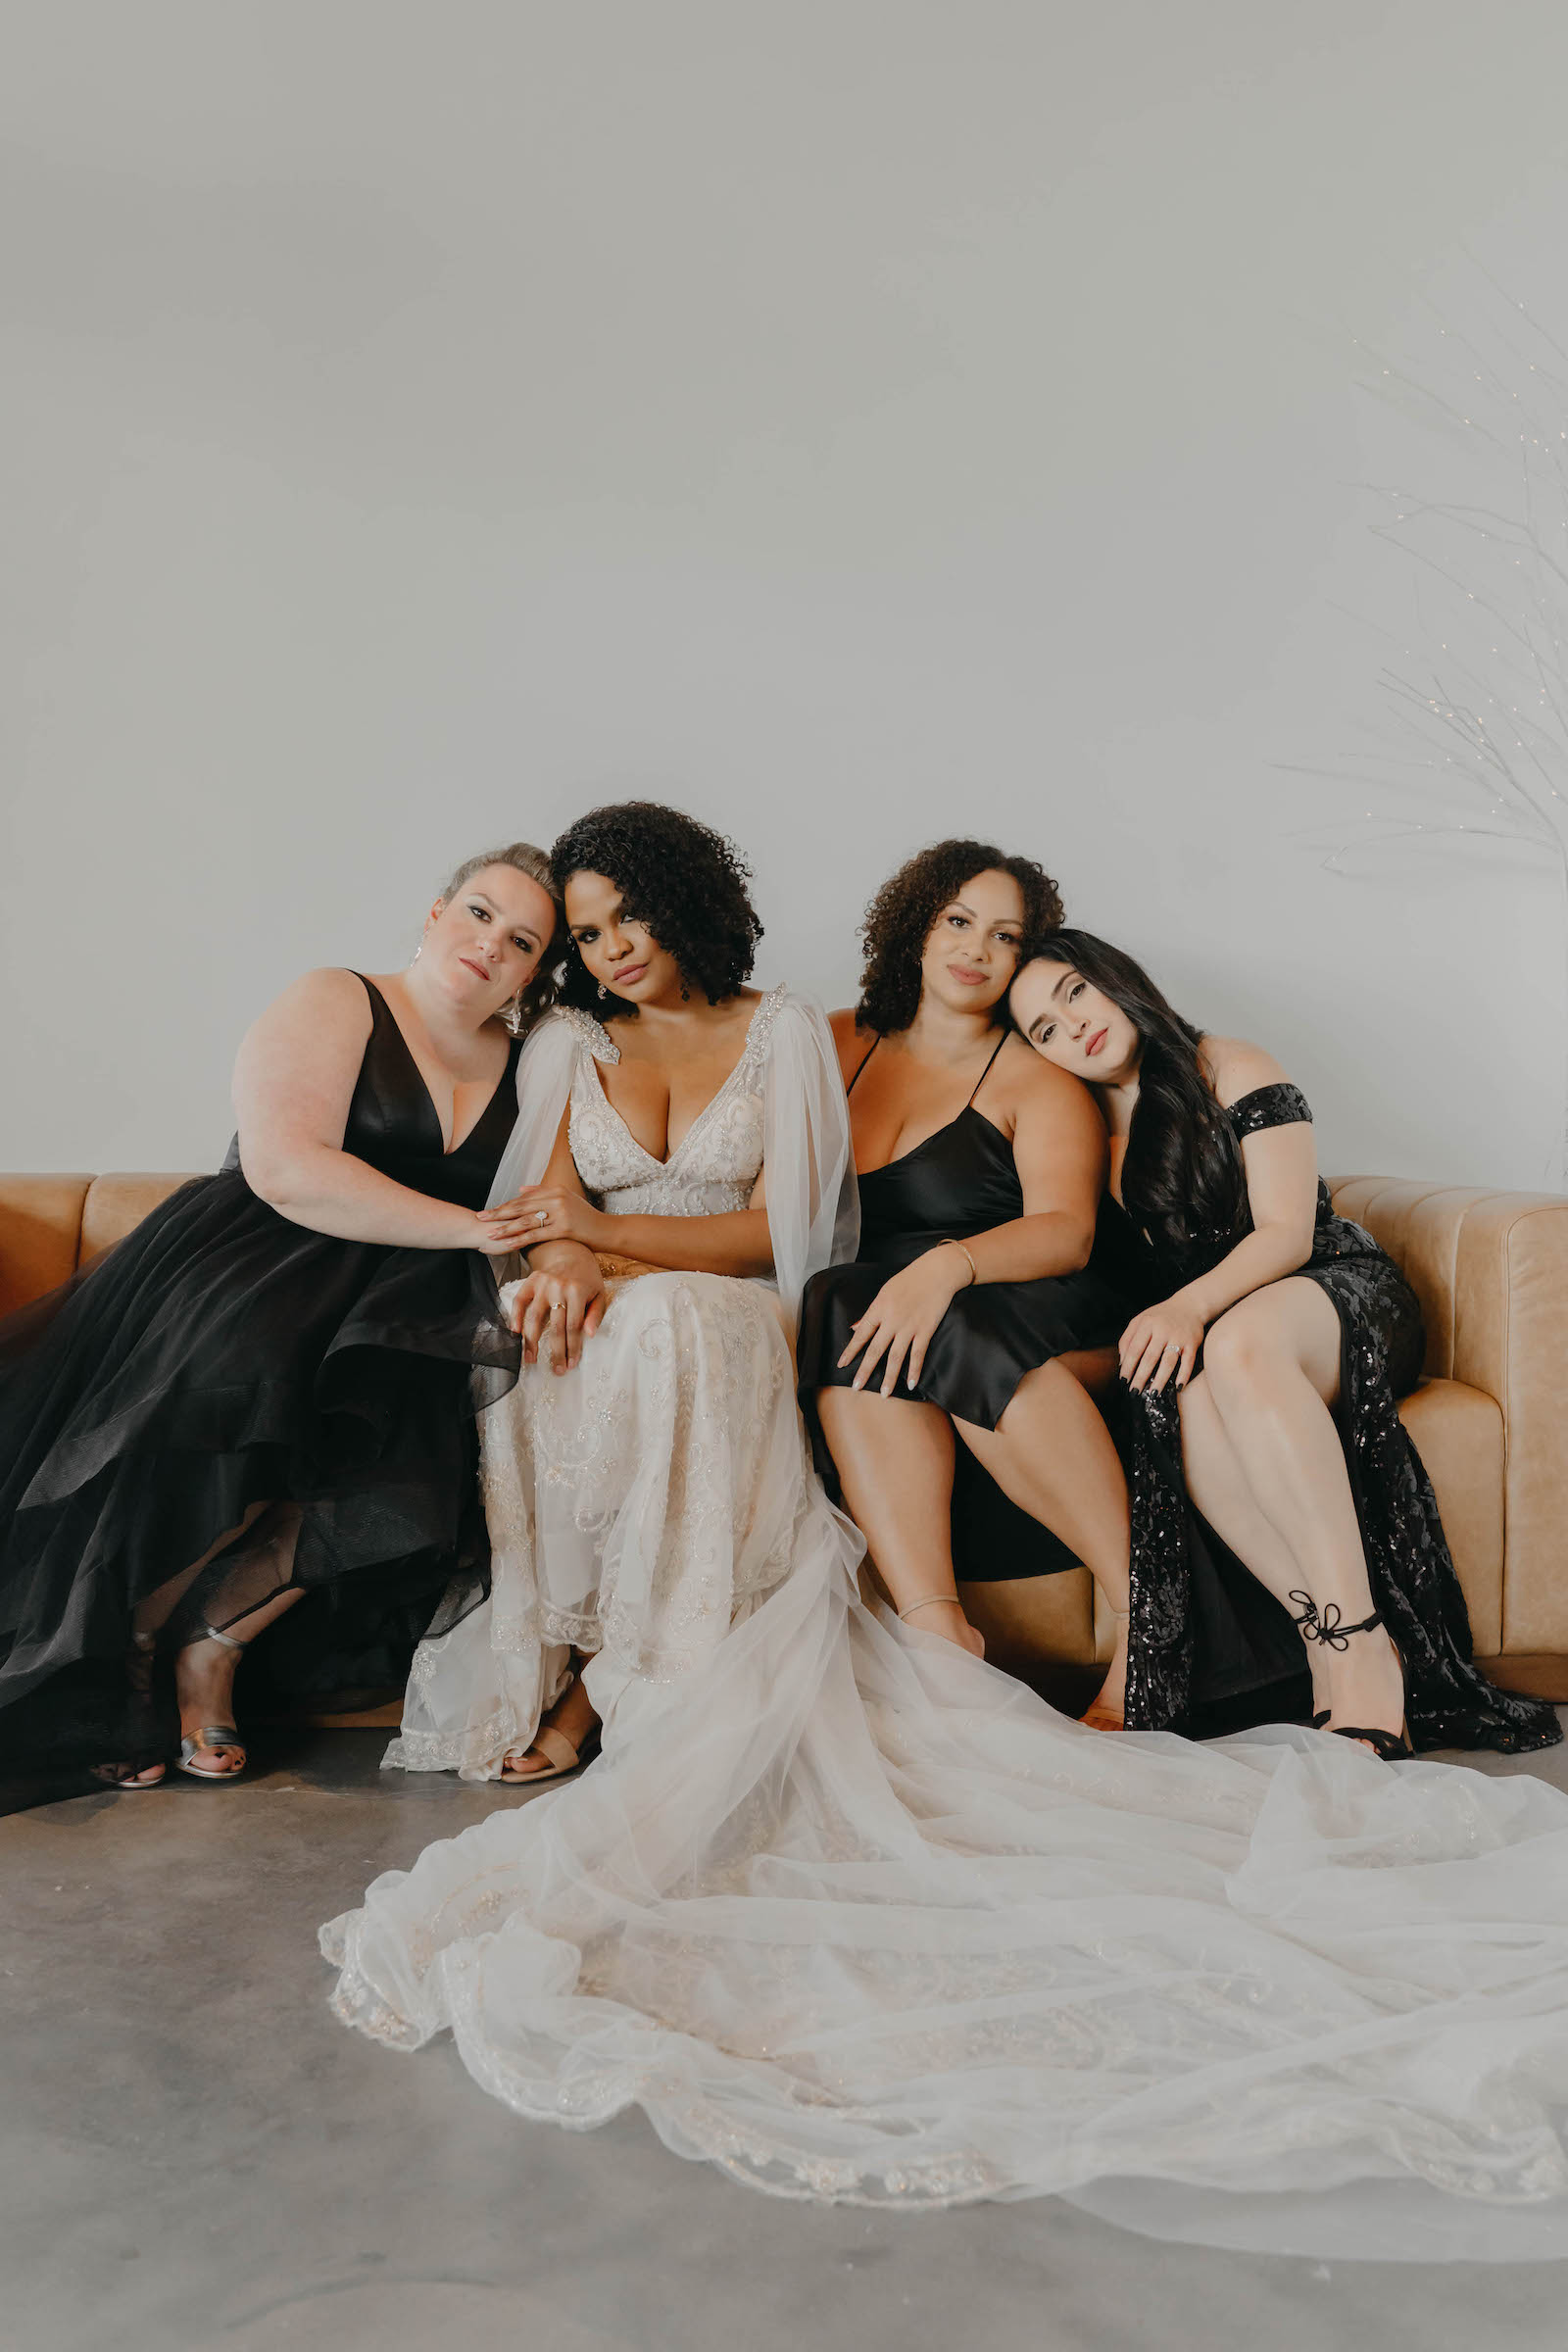 Indoor Bridal Party Portrait in Tampa Wedding Venue Hyde House   Illusion Lace Embroidered Beaded V Neck Wedding Dress Bridal Gown with Sheer Tulle Cape Sleeves by Designer Amalia Carrara Bridal   Black Formal Elegant Bridesmaid Dresses